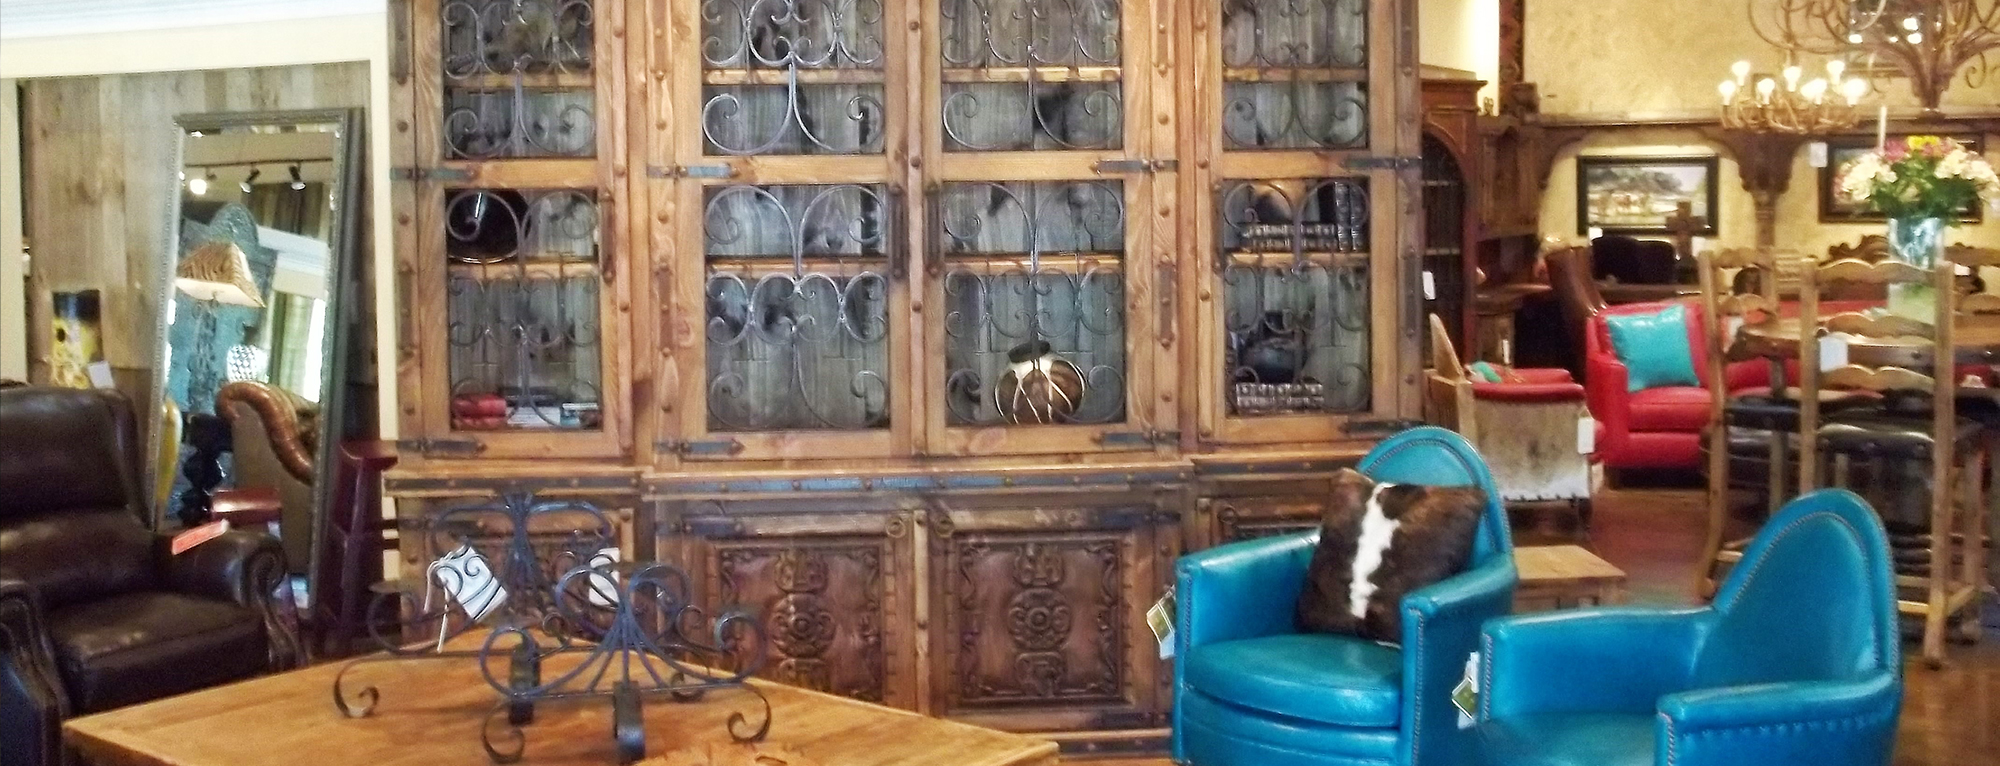 Austin, TX - Primitives Furniture & Accessories